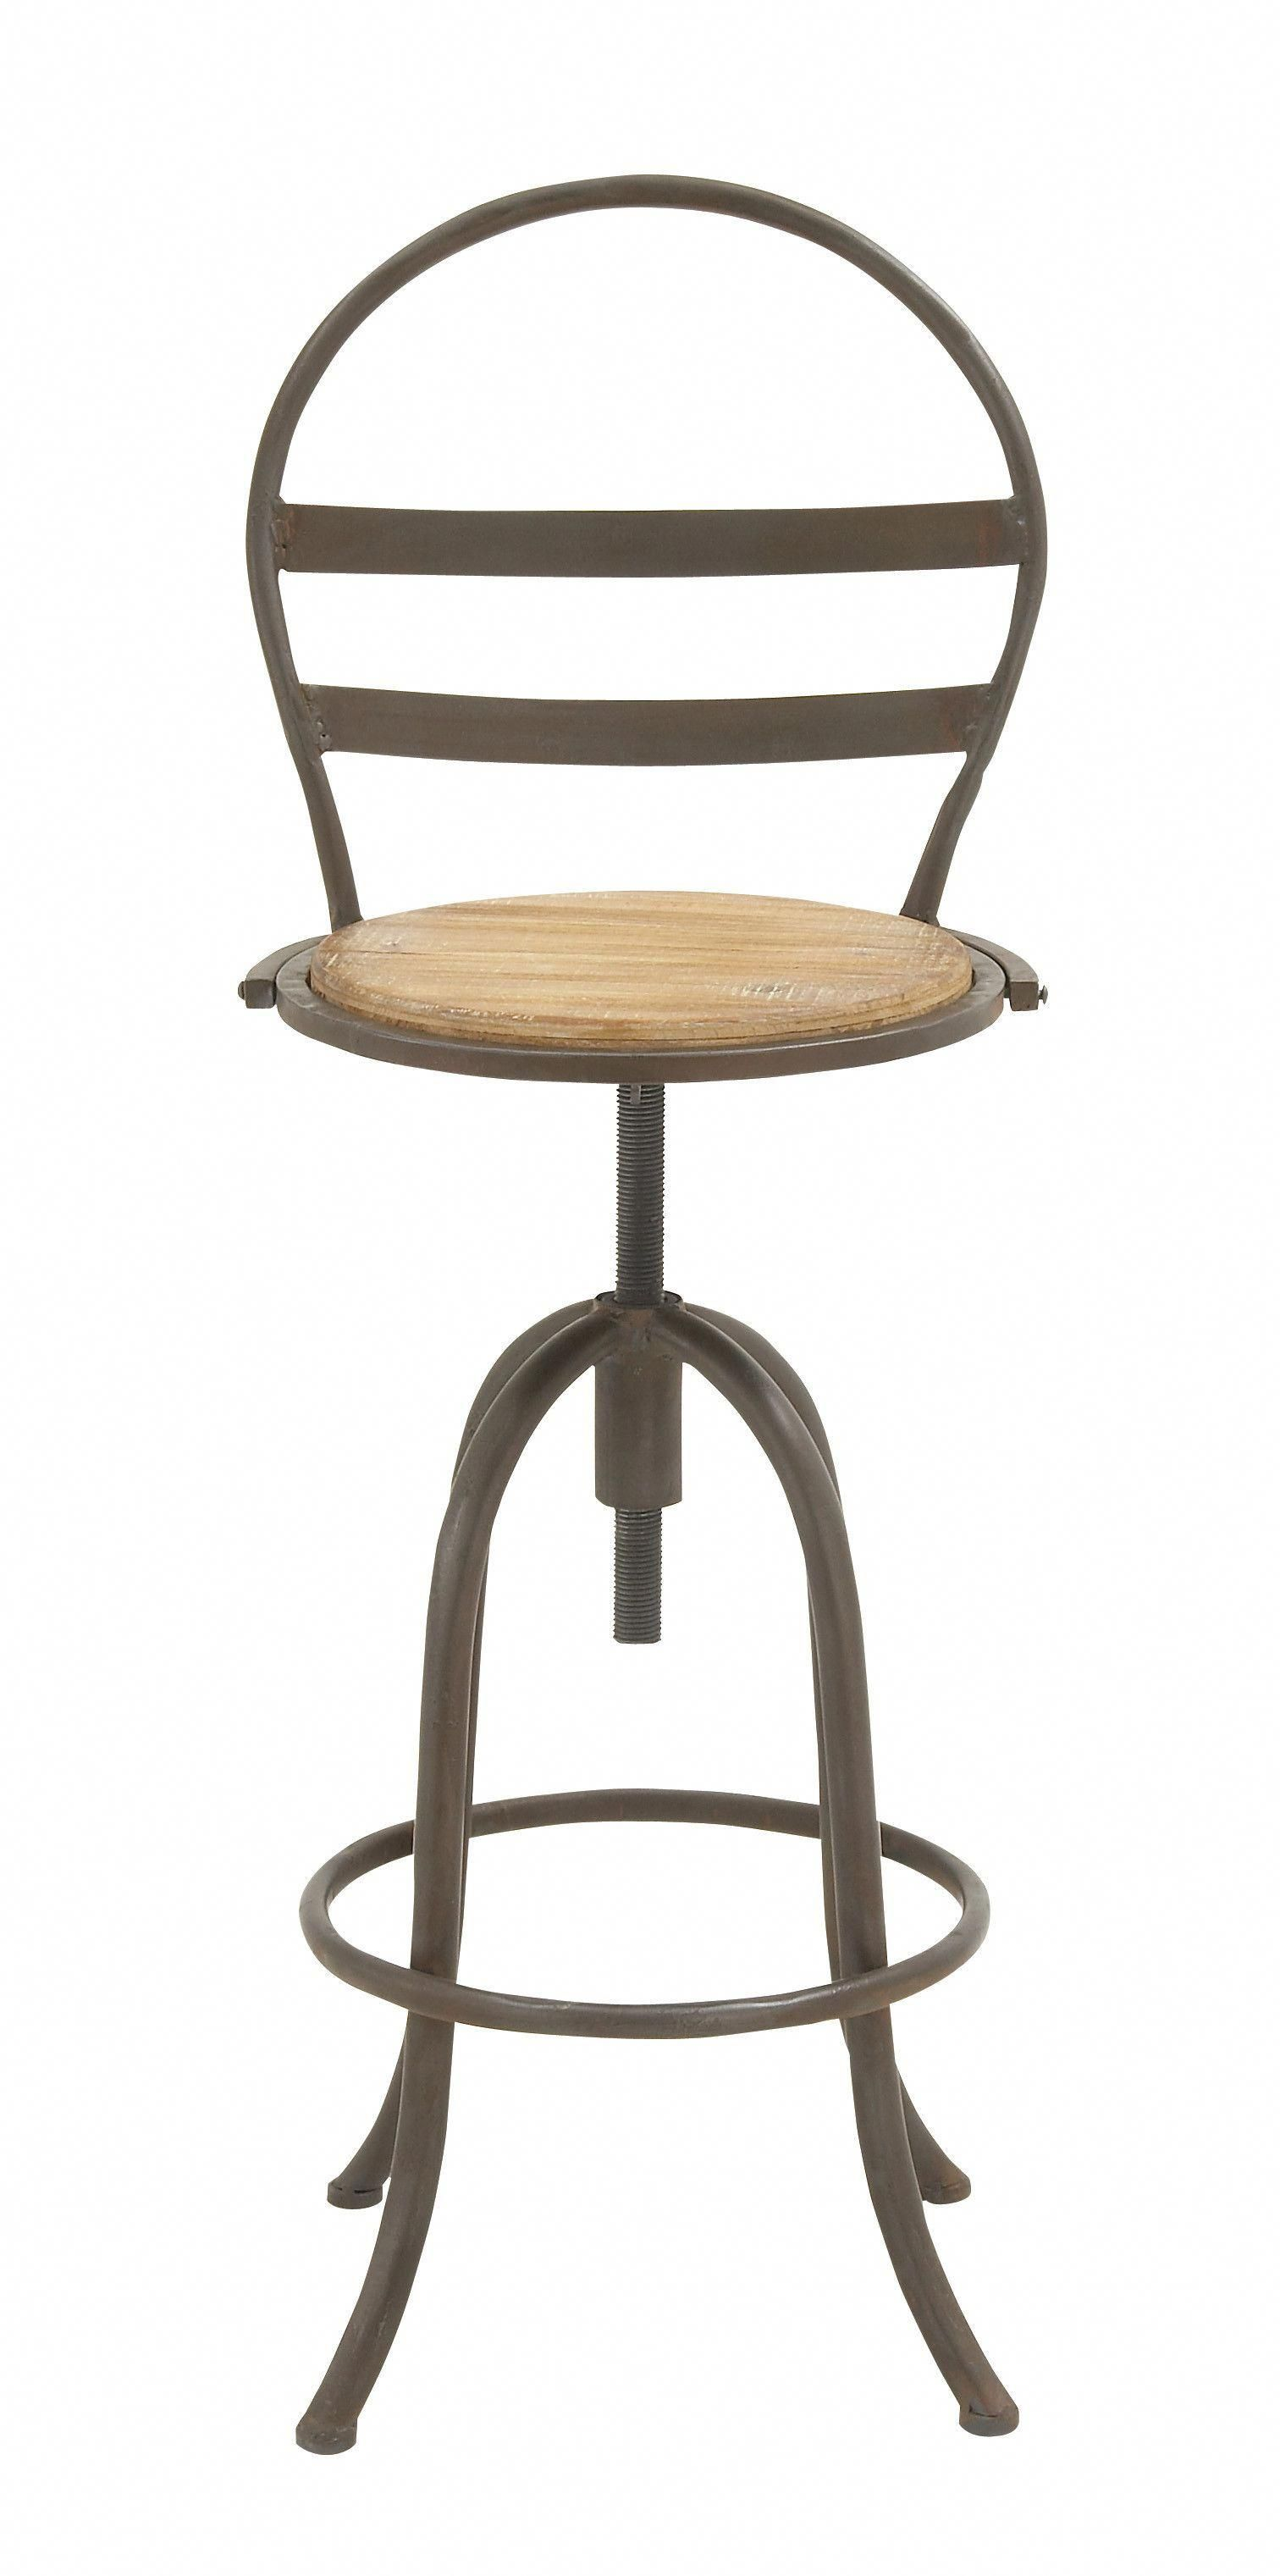 Alluring Metal Wood Bar Chair Awesometaylormadegolfclubs Awesome